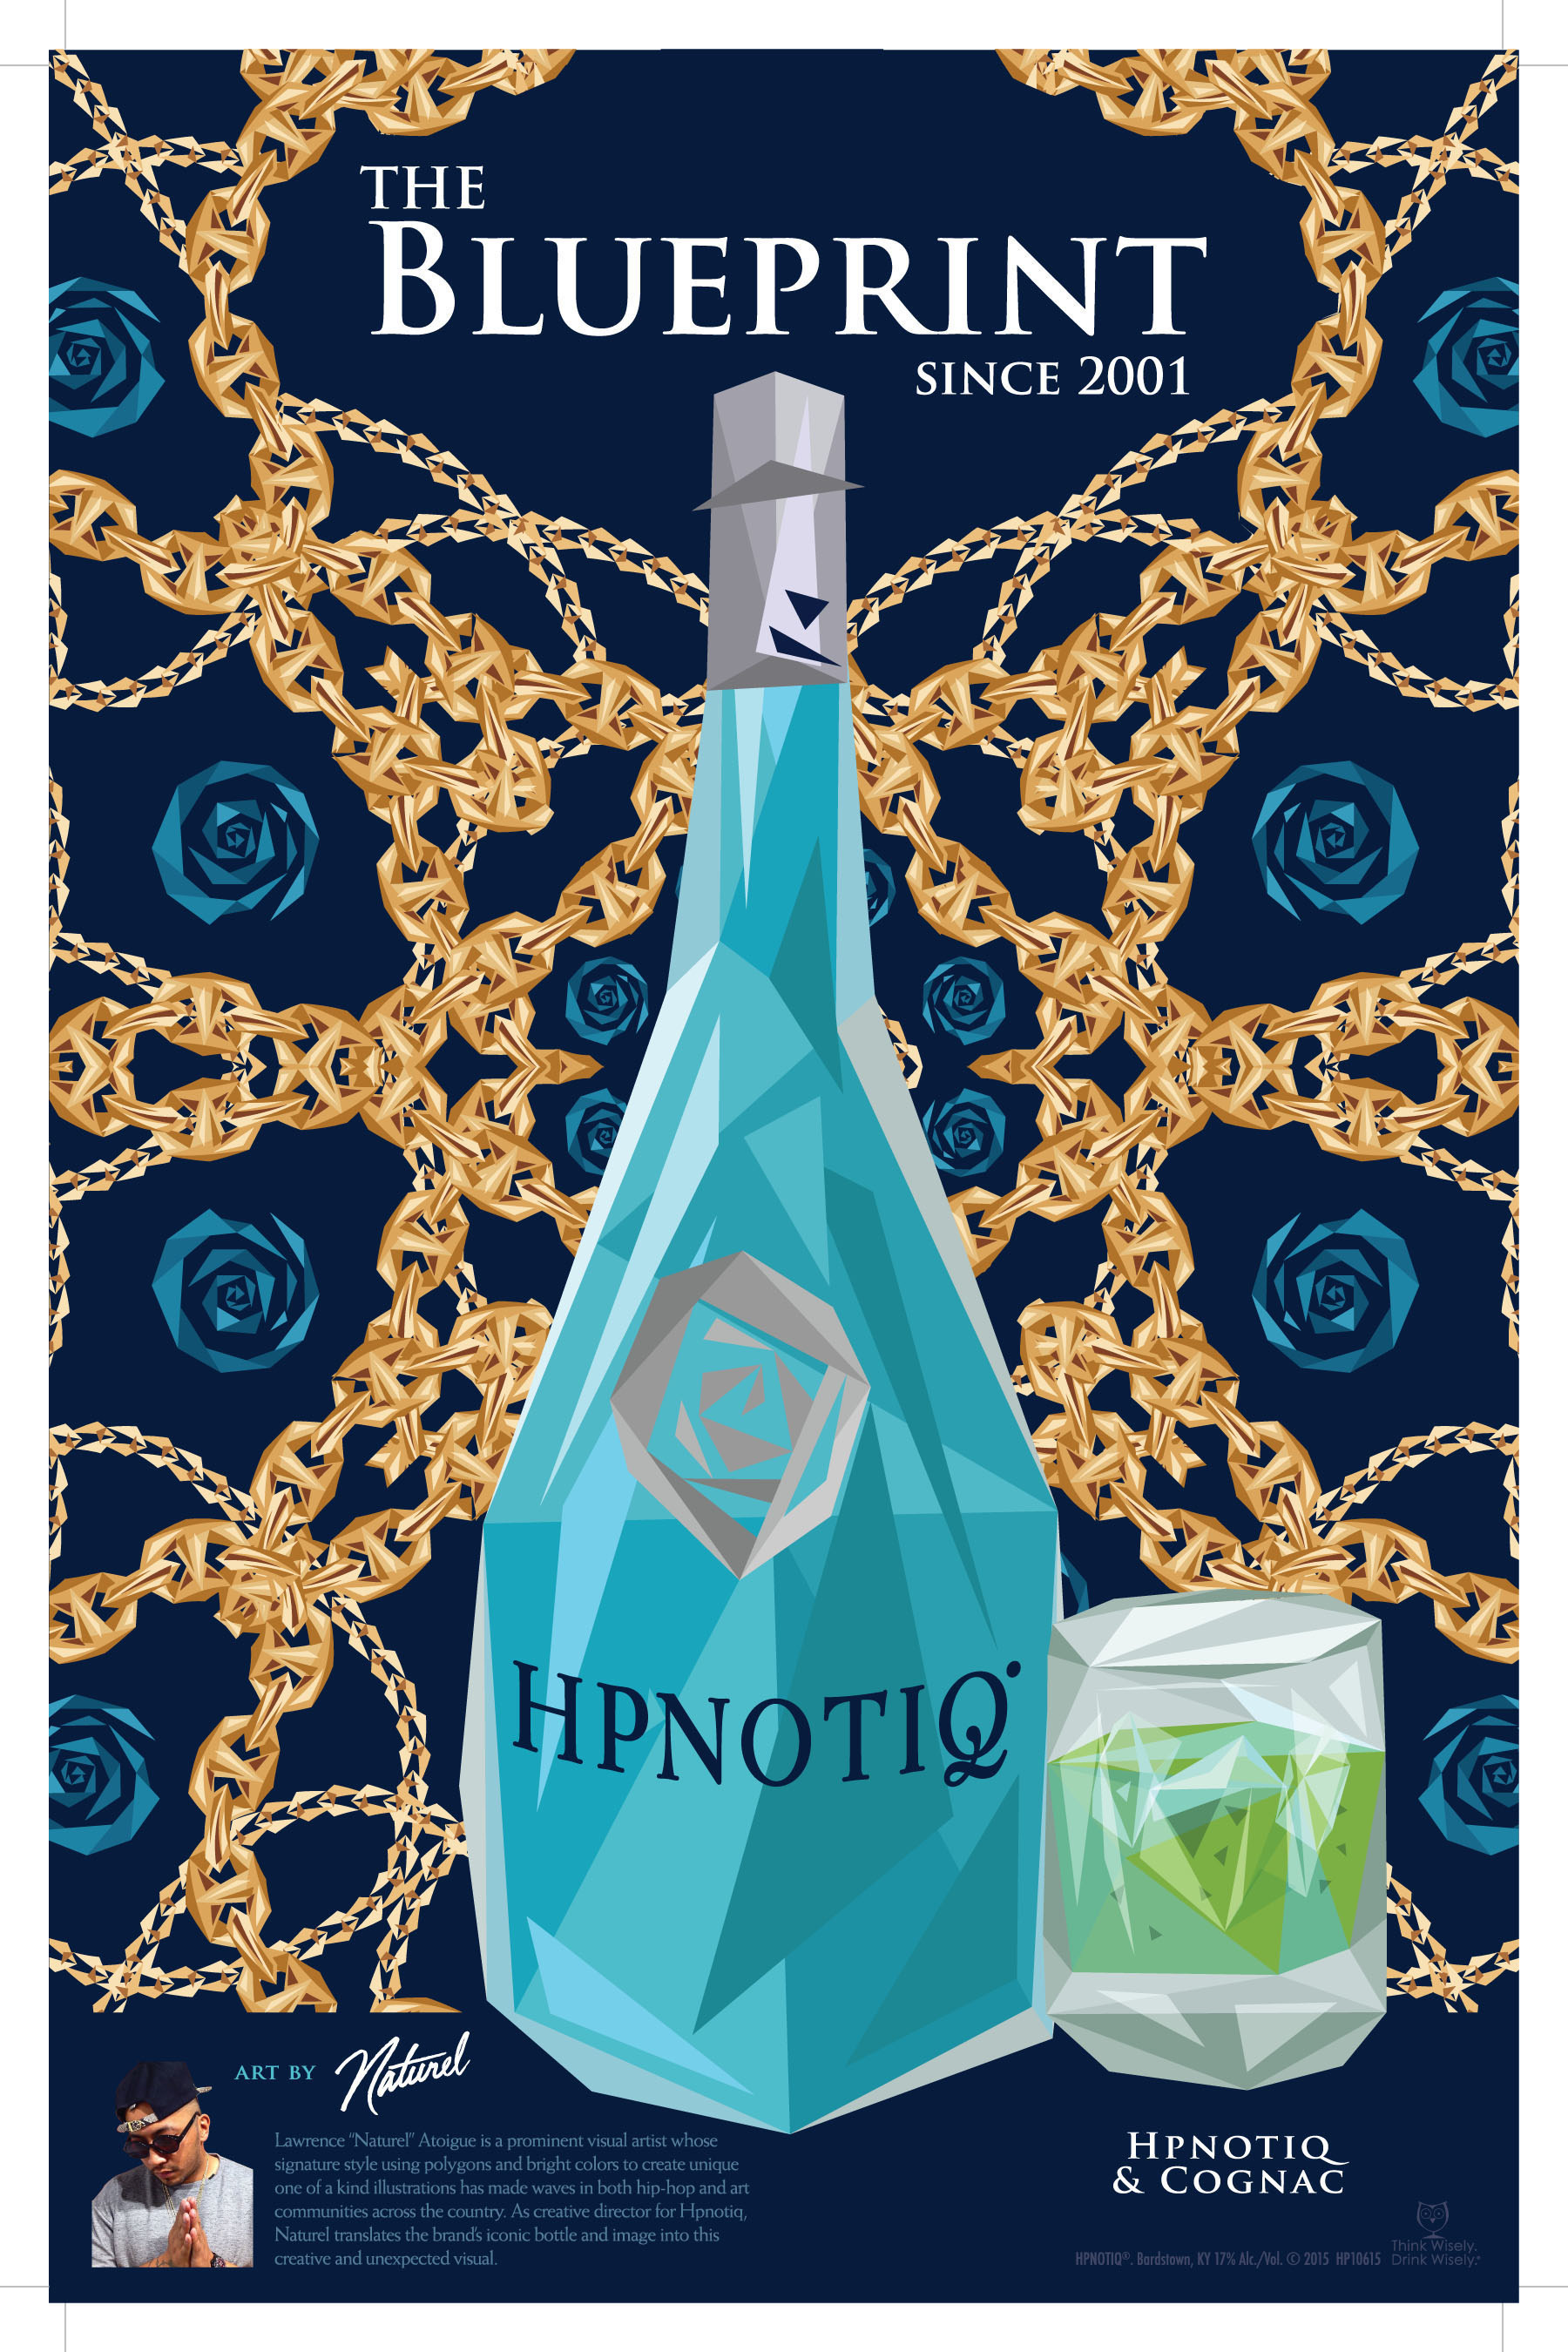 A sample of the Hpnotiq brand's new advertising, created by artist and brand collaborator Naturel.